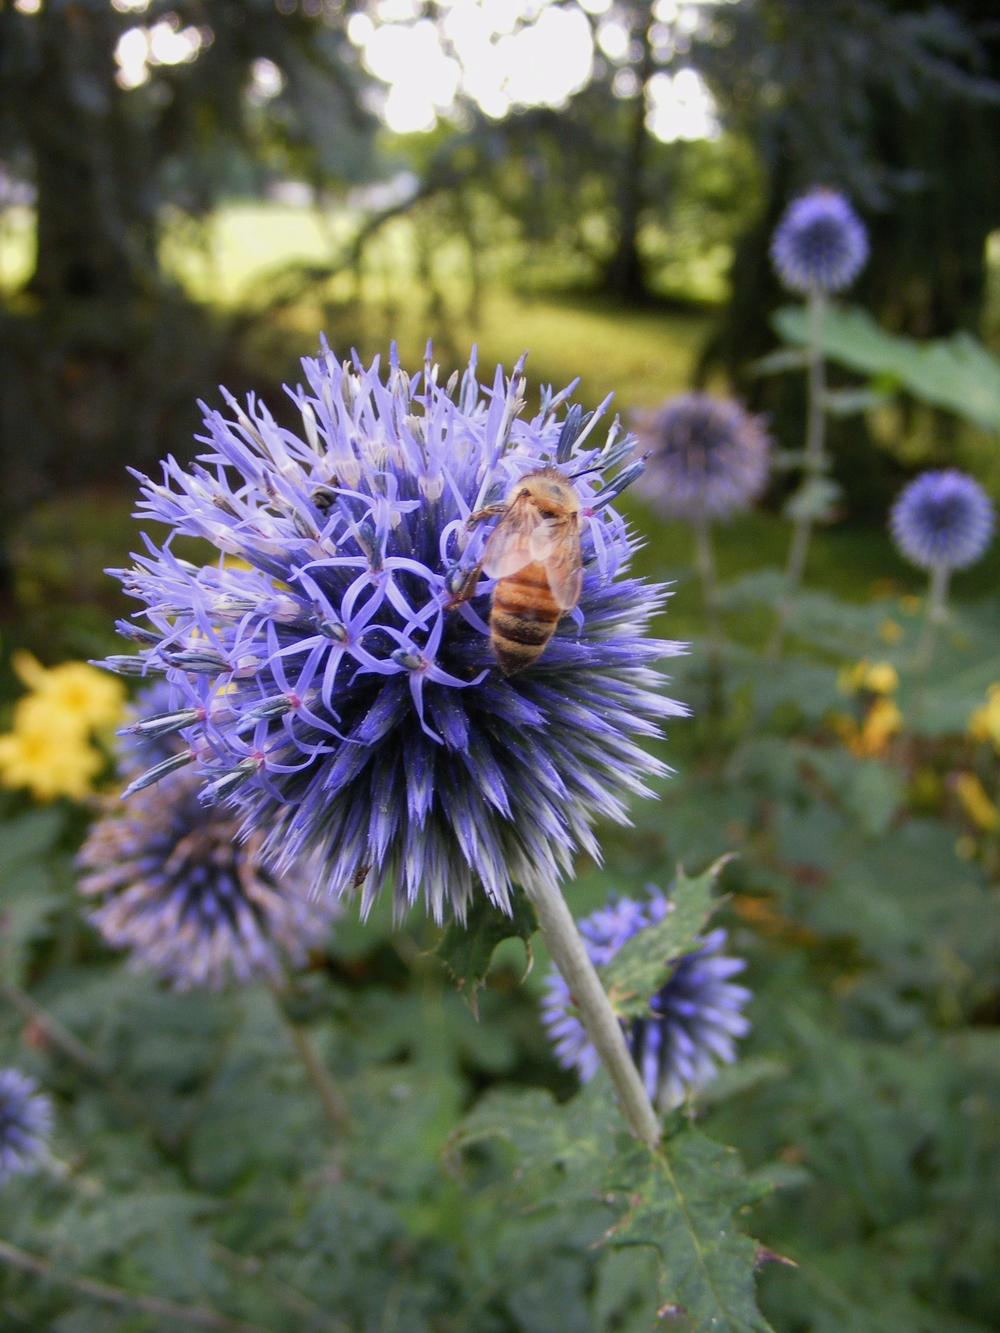 Echinops and a rare honeybee